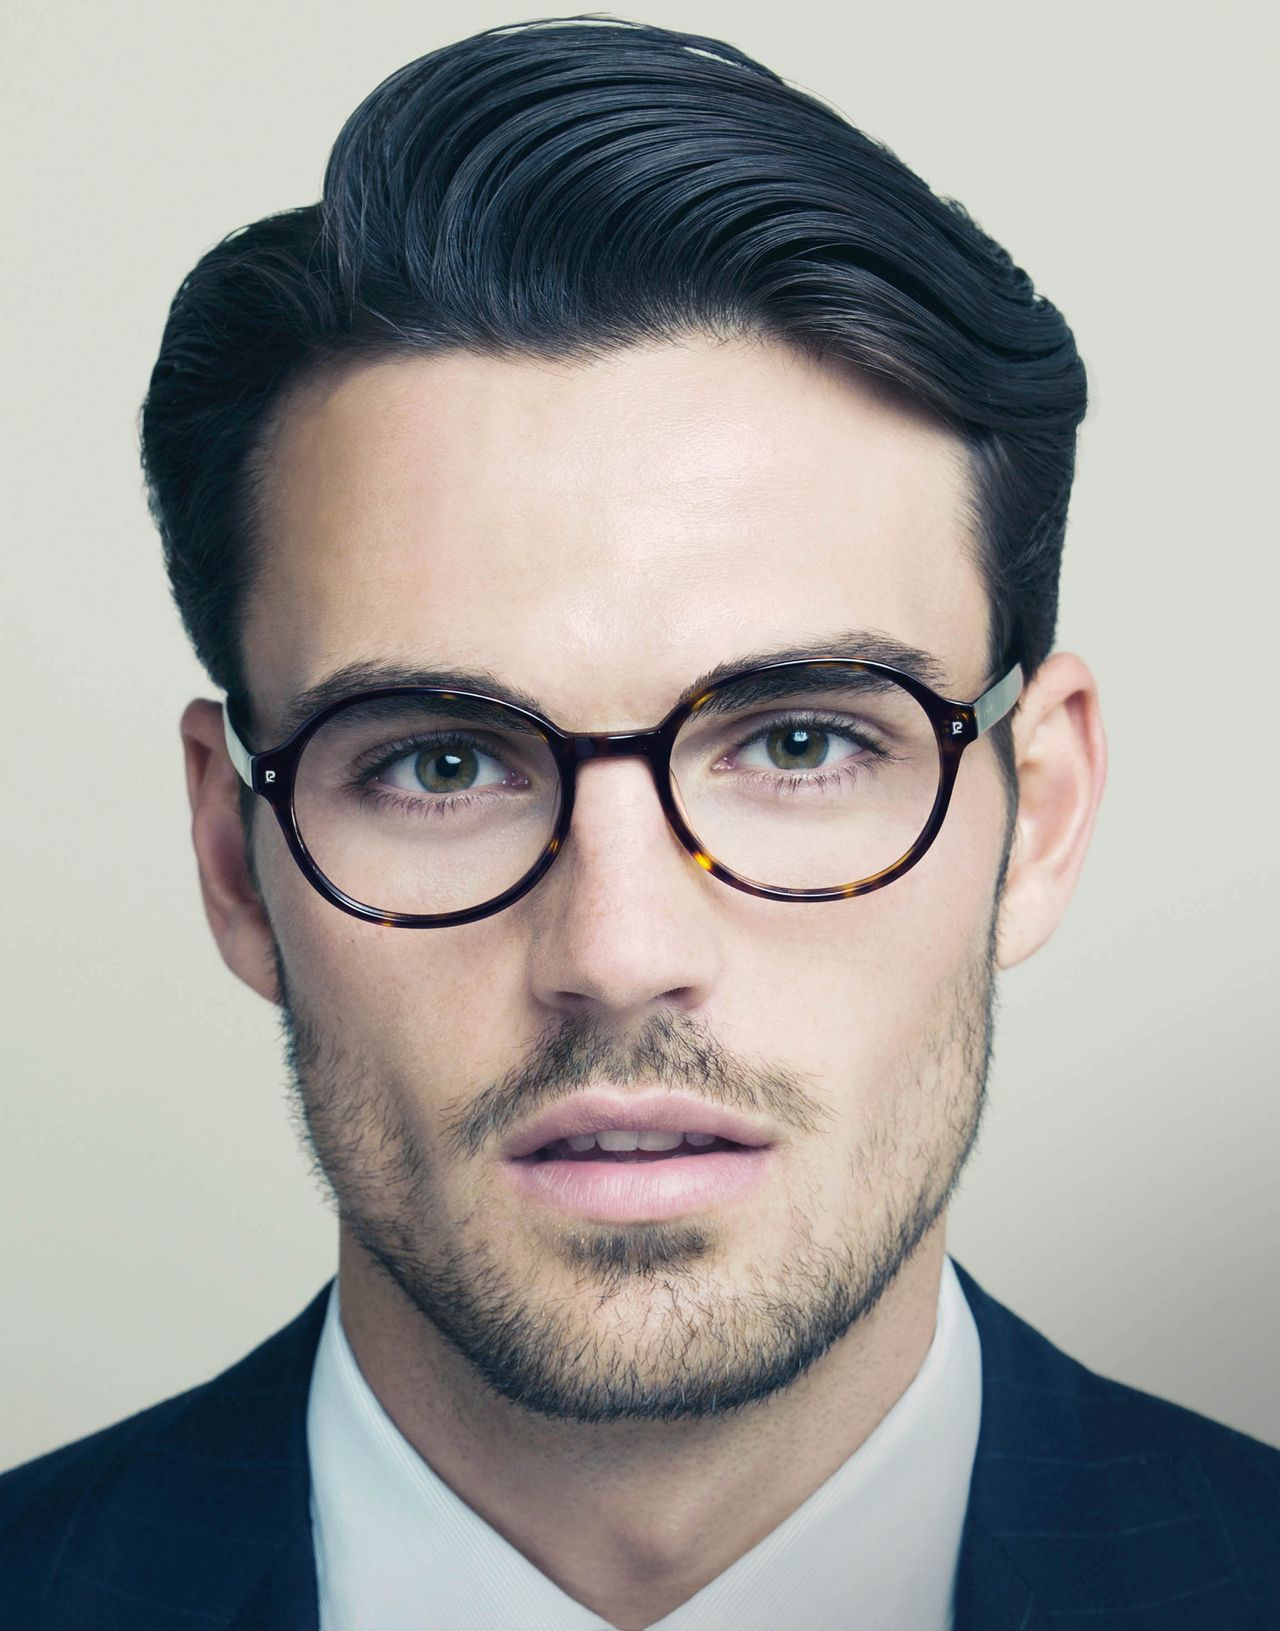 The modern vresion of the Clark Kent look. Professional yet fresh short  hair style for men.    Une version moderne du look de Clark Kent. 0ef8636b79aa